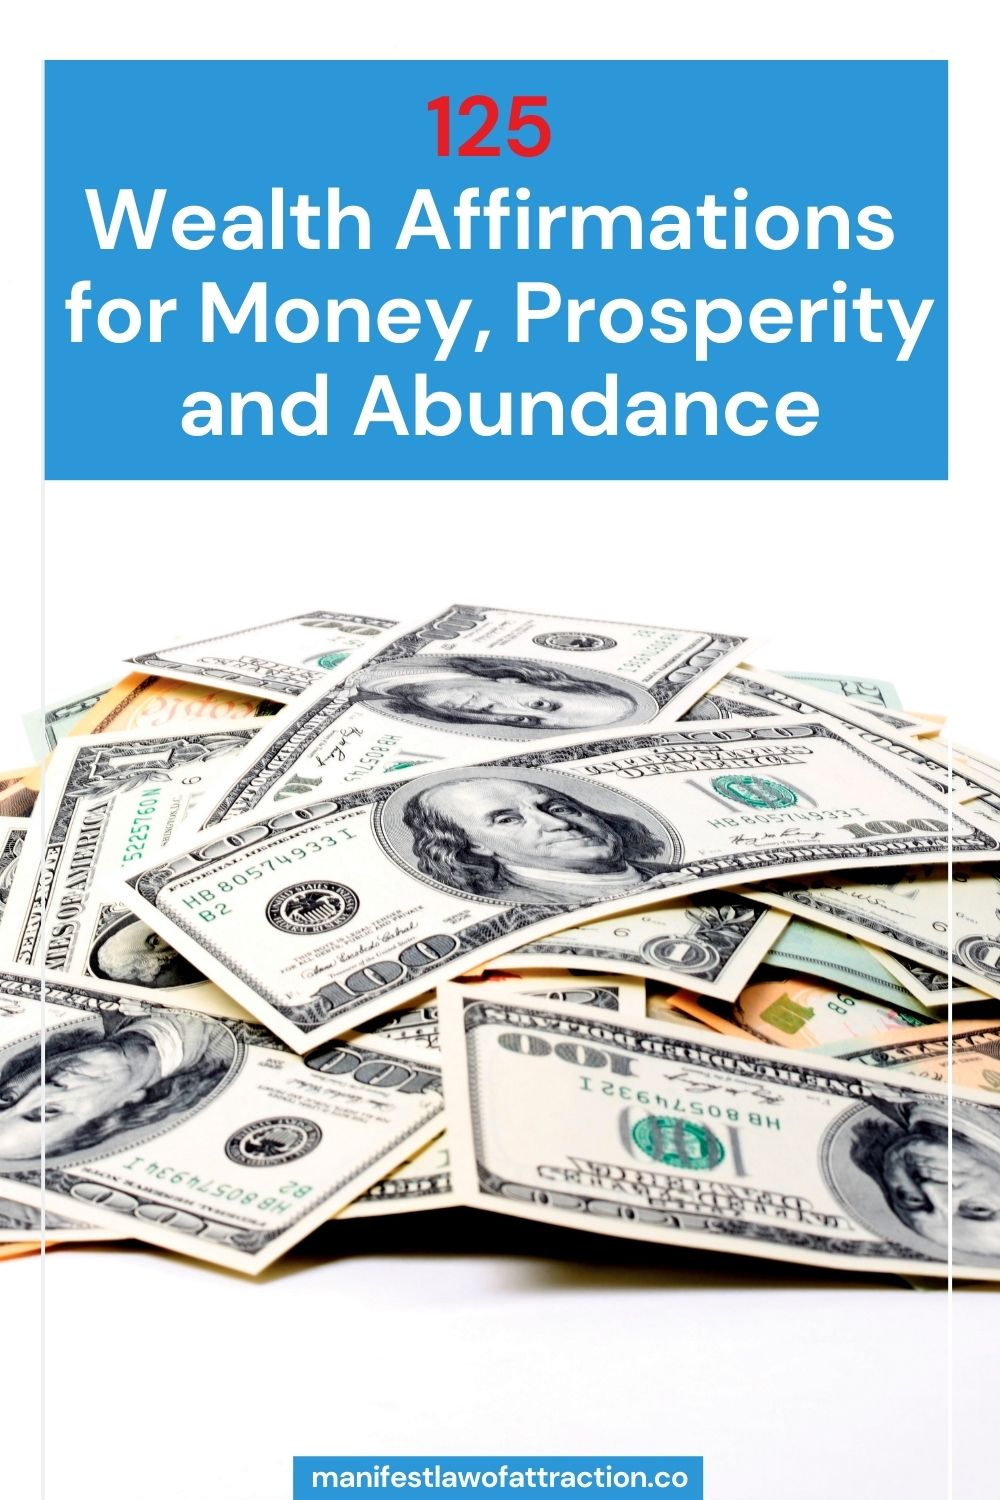 125 Wealth Affirmations for Money, Prosperity and Abundance 3